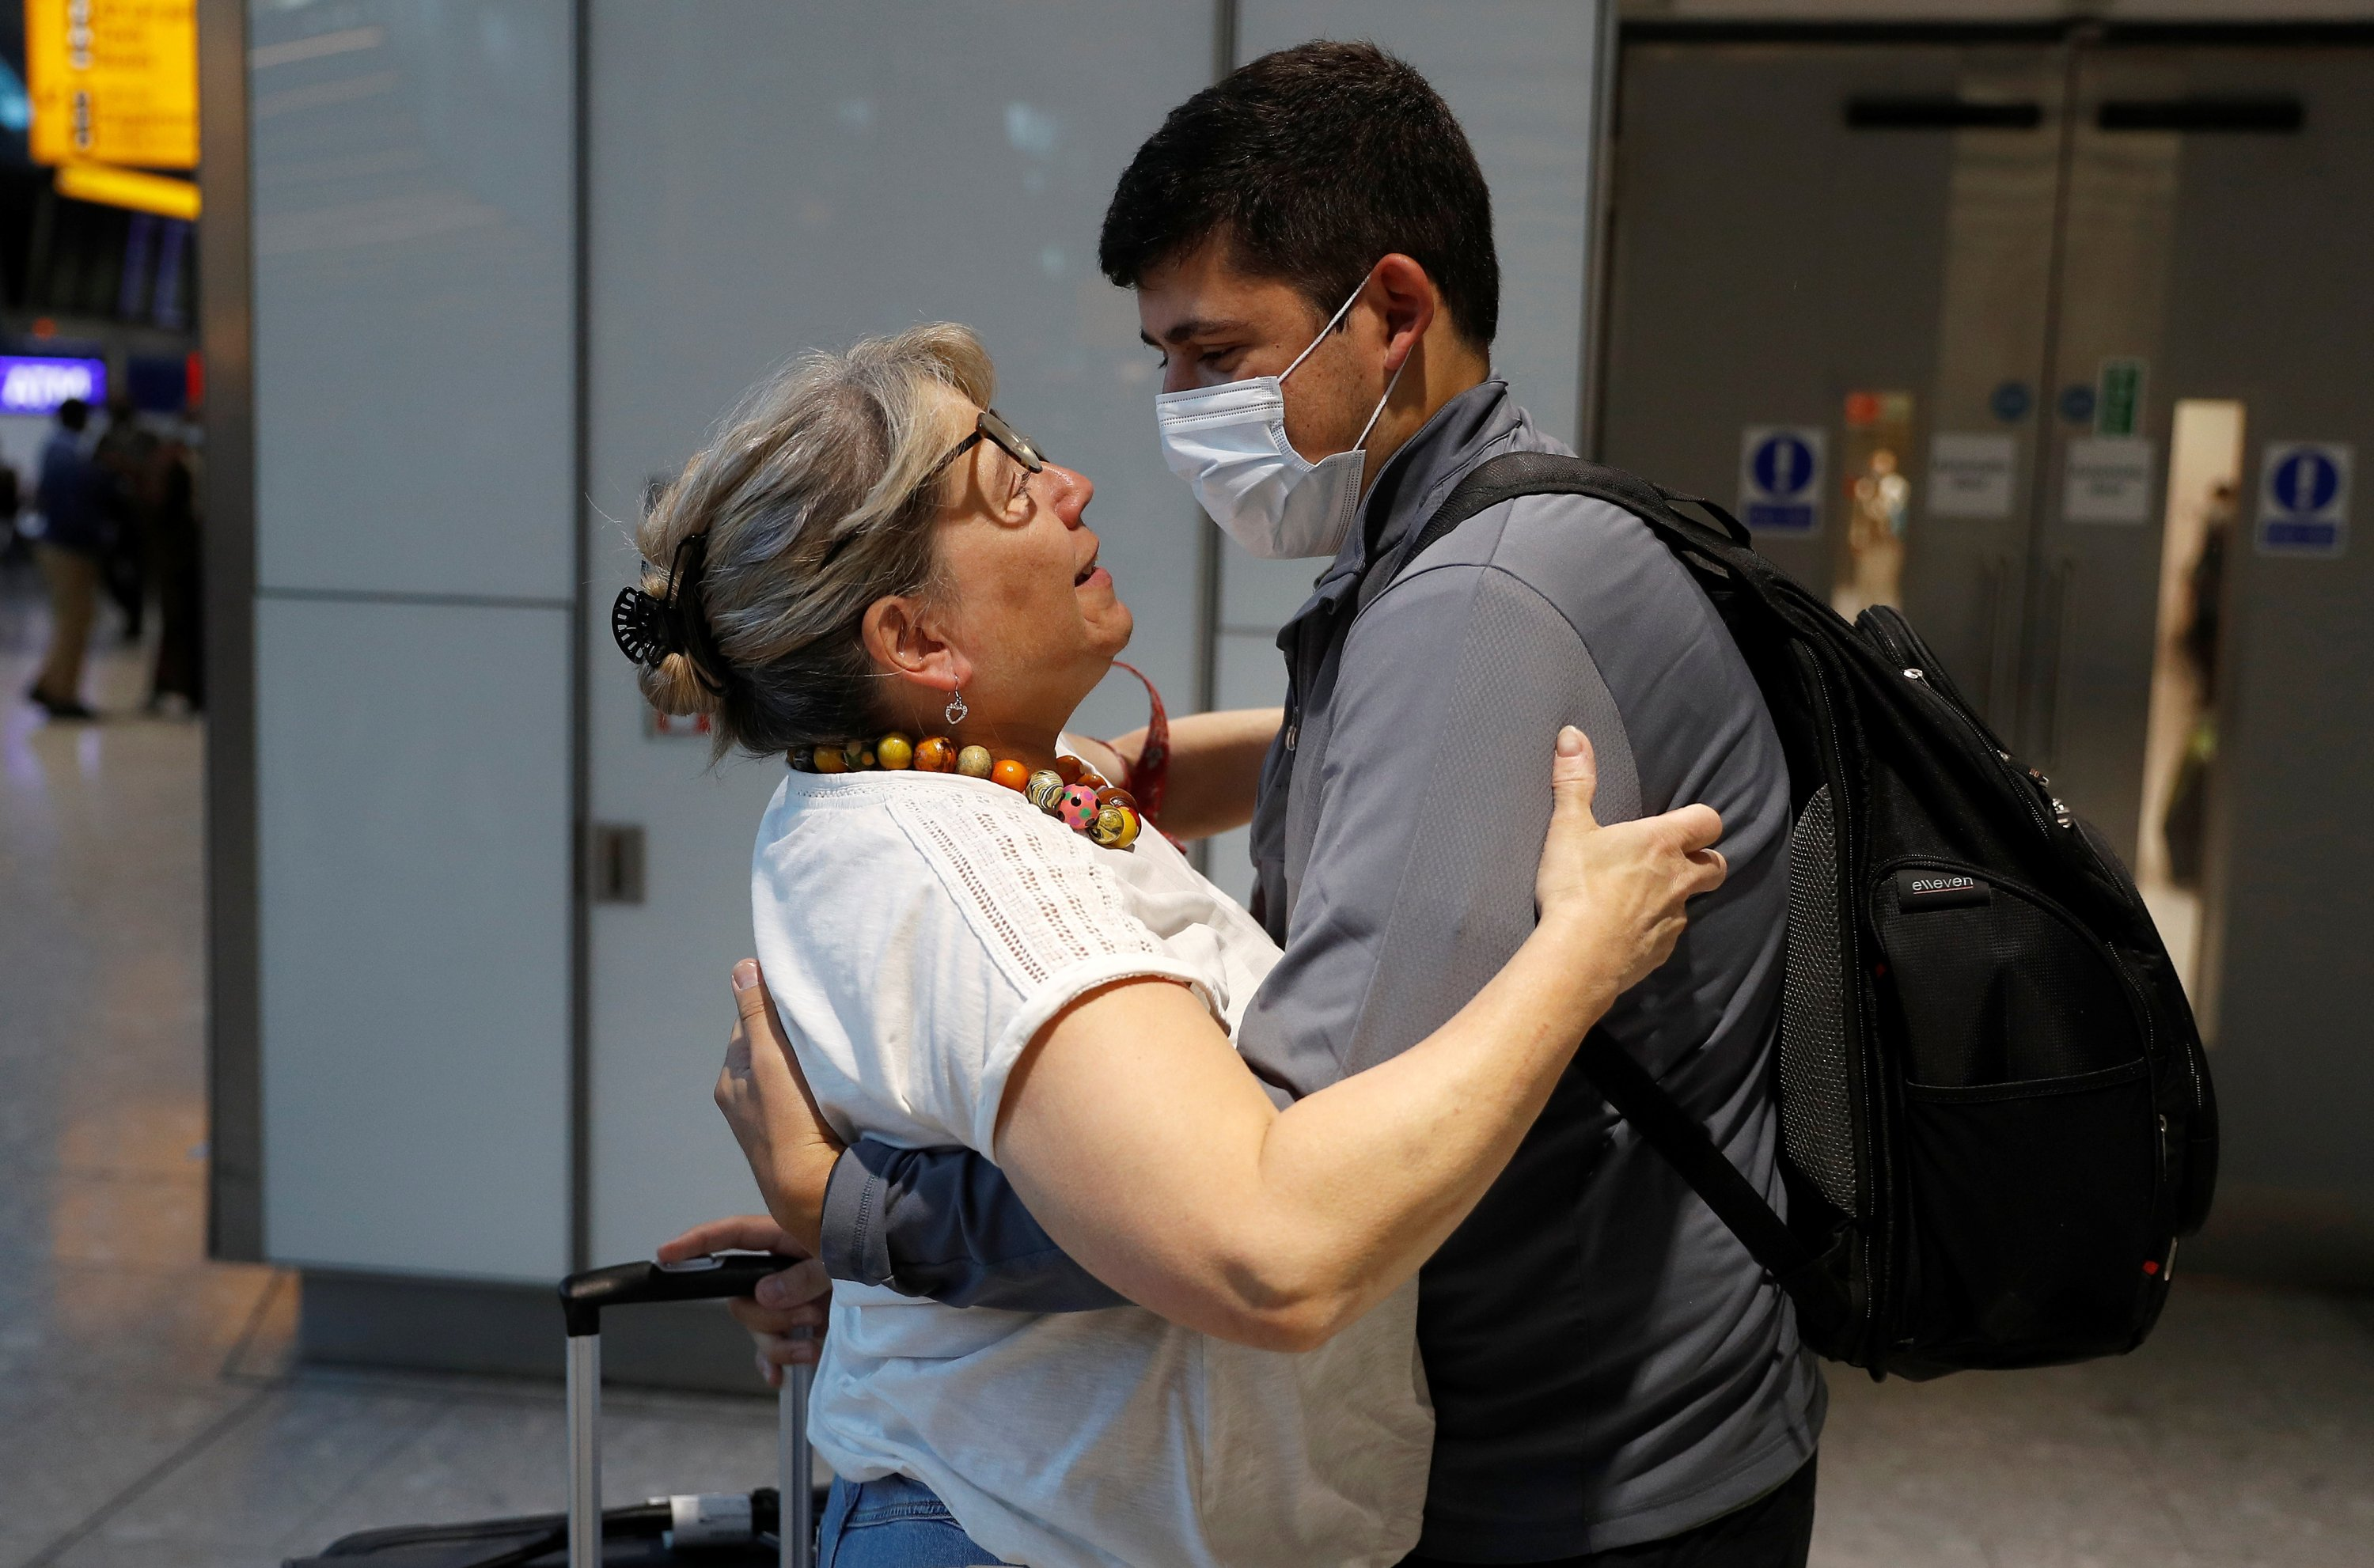 Karen Tyler embraces her son Jonathan who arrived from the U.S., at the international arrivals area of Terminal 5 in London's Heathrow Airport, Britain, Aug. 2, 2021. (Reuters Photo)